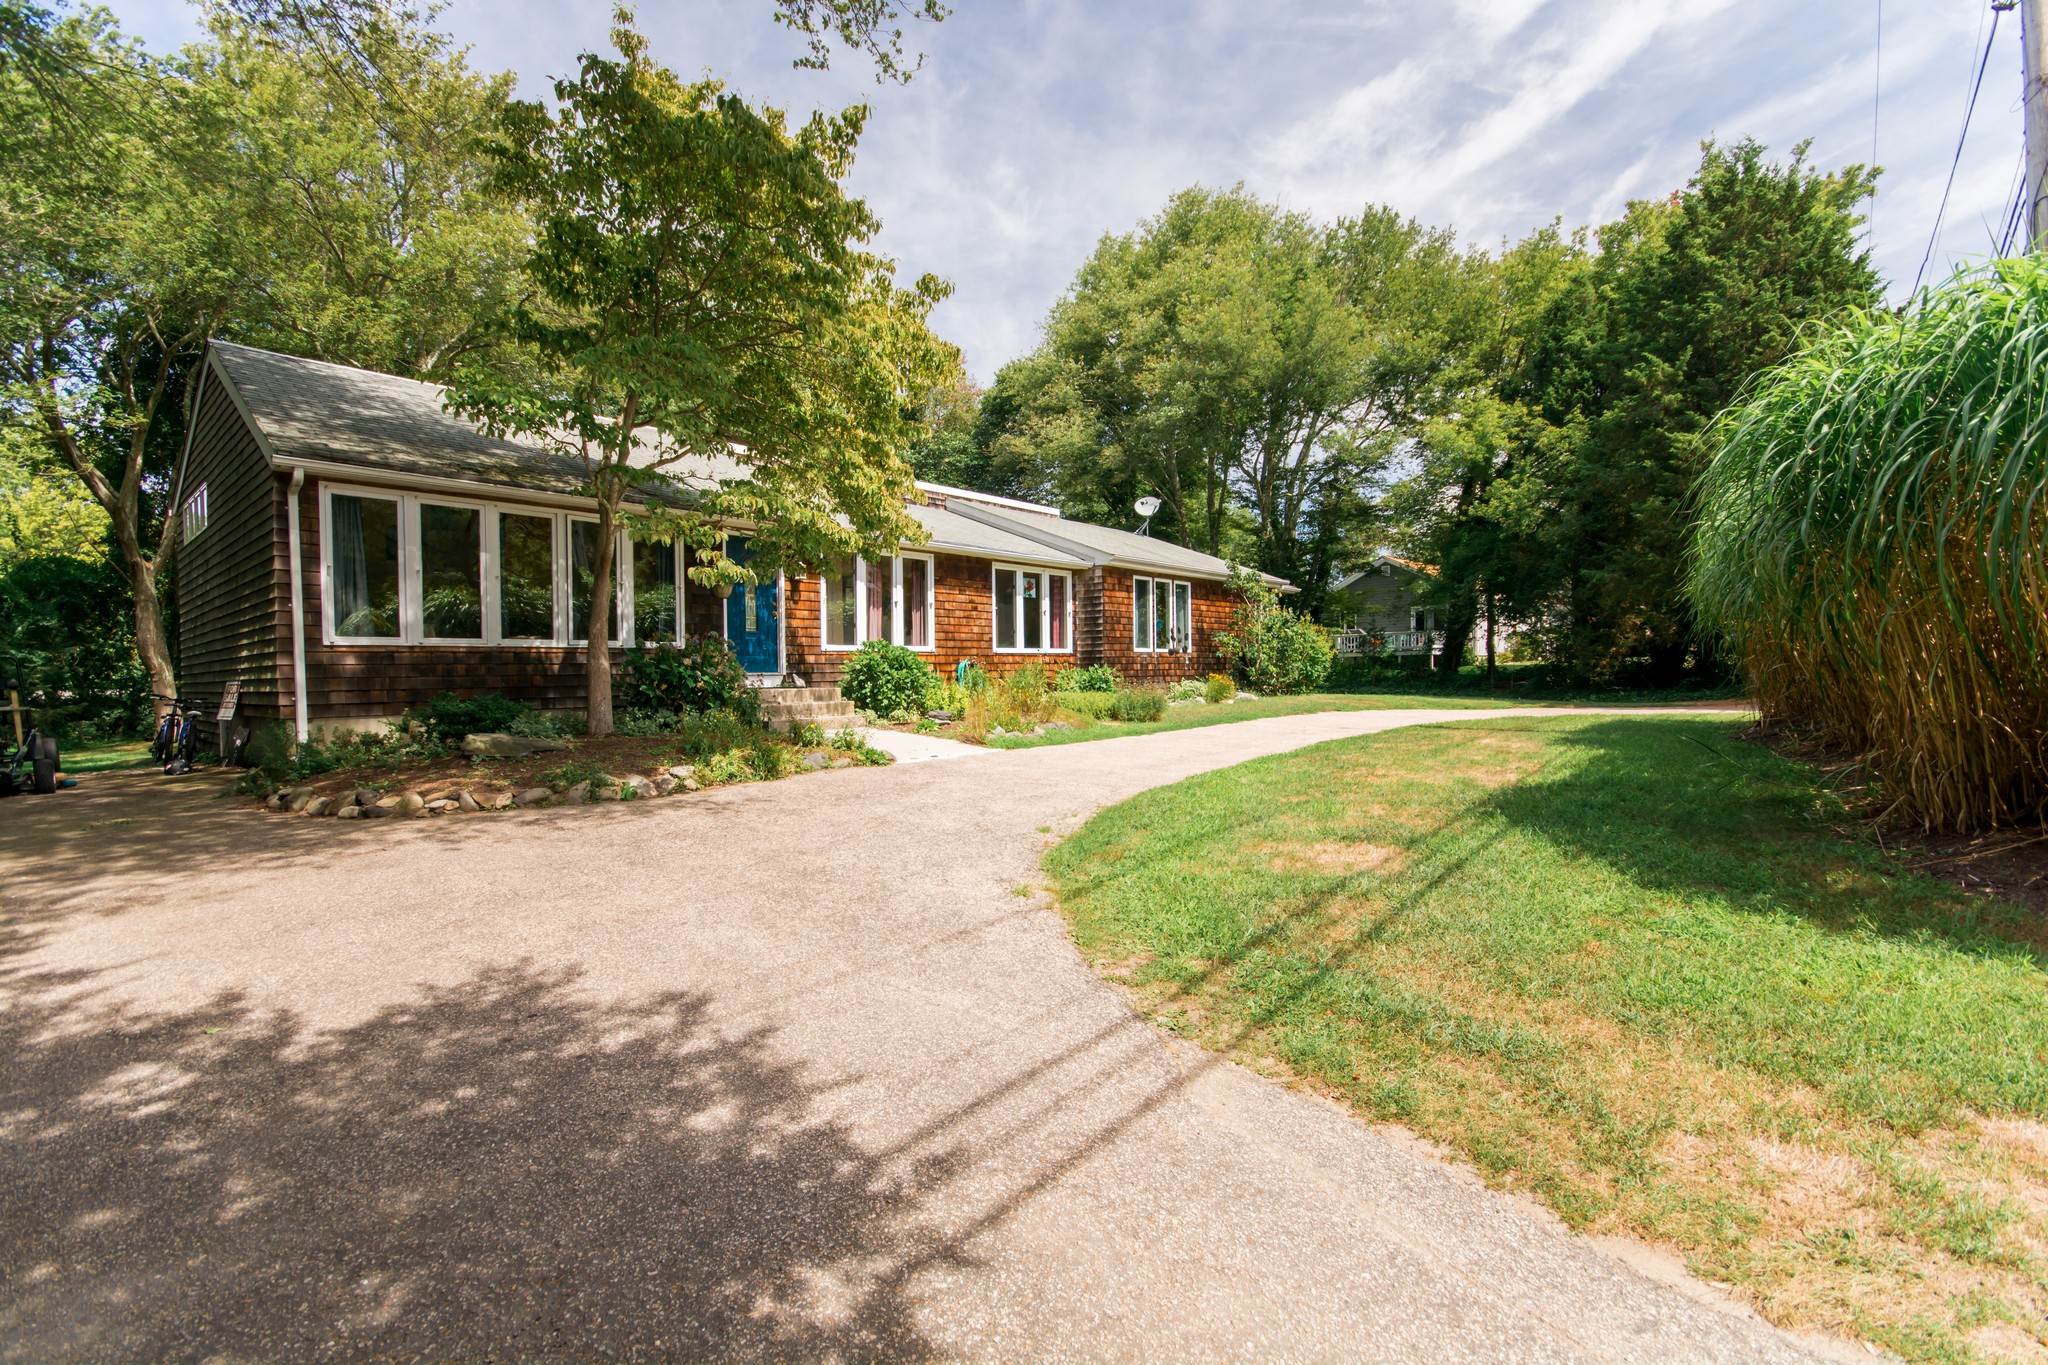 Single Family Home for Sale at Jamestown Shores 20 Hull Street Jamestown, Rhode Island 02835 United States